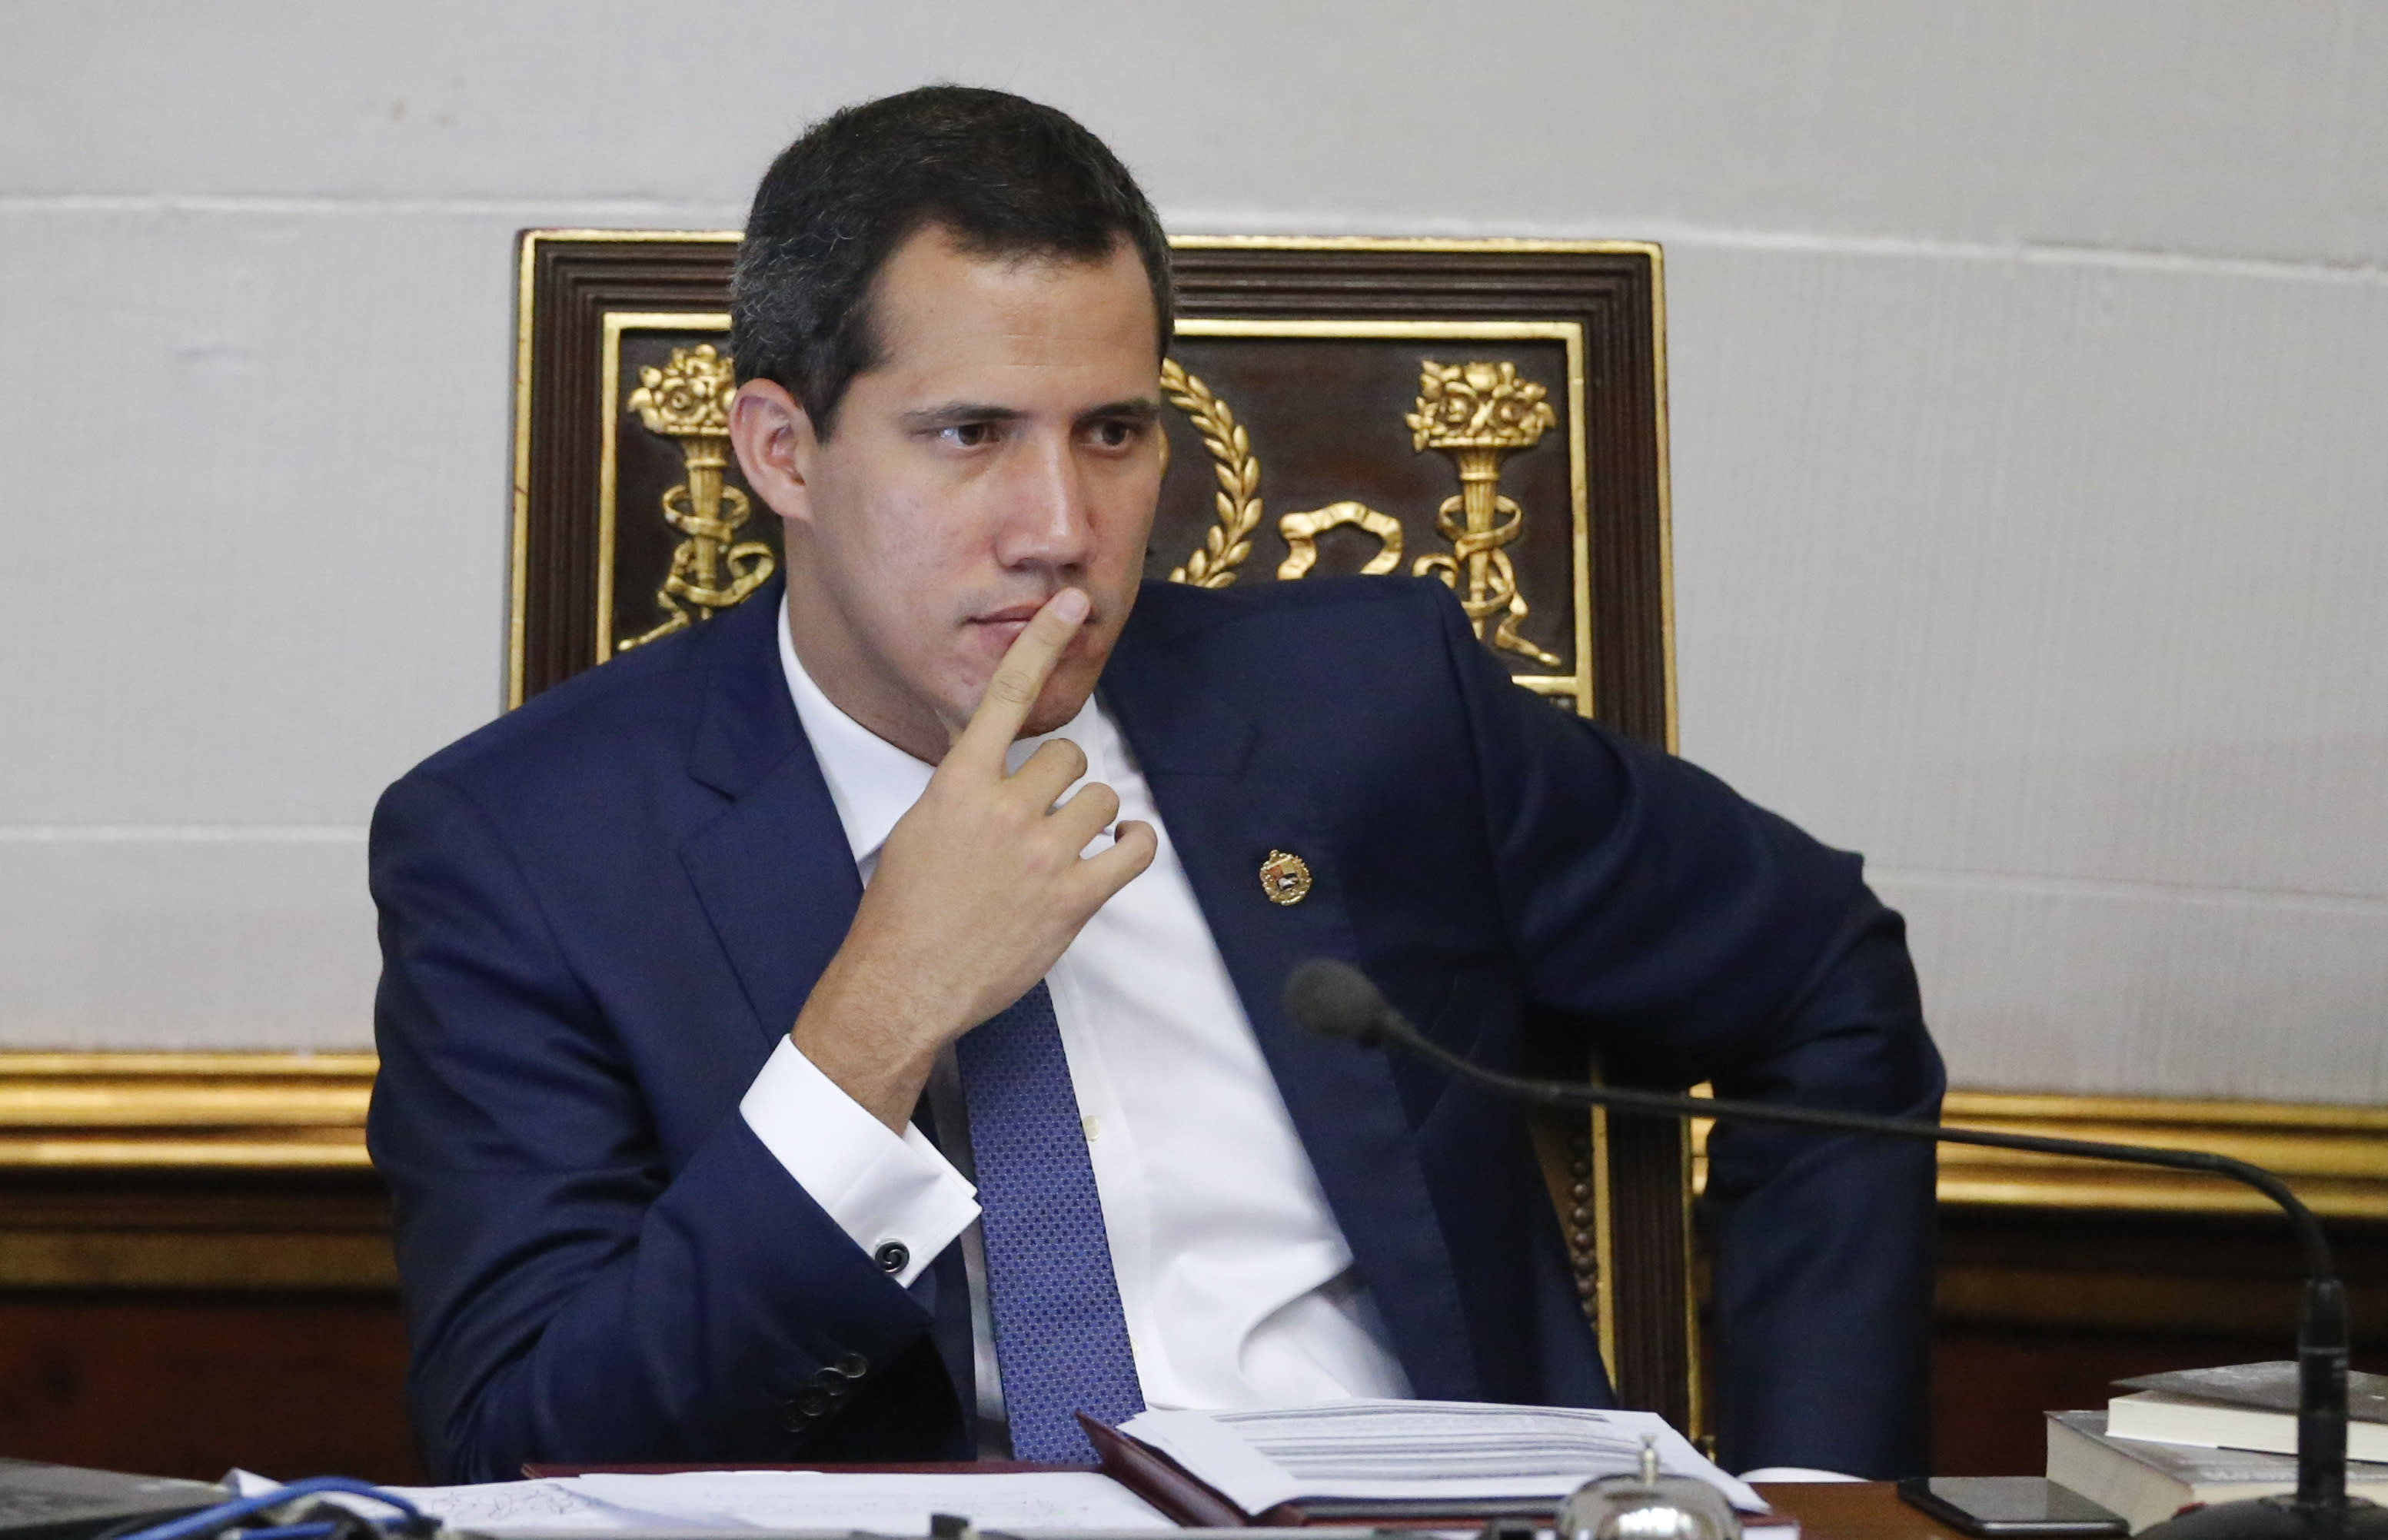 Venezuelan Opposition leader and self-proclaimed interim president of Venezuela Juan Guaido sits during a weekly session at the National Assembly in Caracas, Venezuela, Tuesday, Sept 10, 2019. (AP Photo/Ariana Cubillos